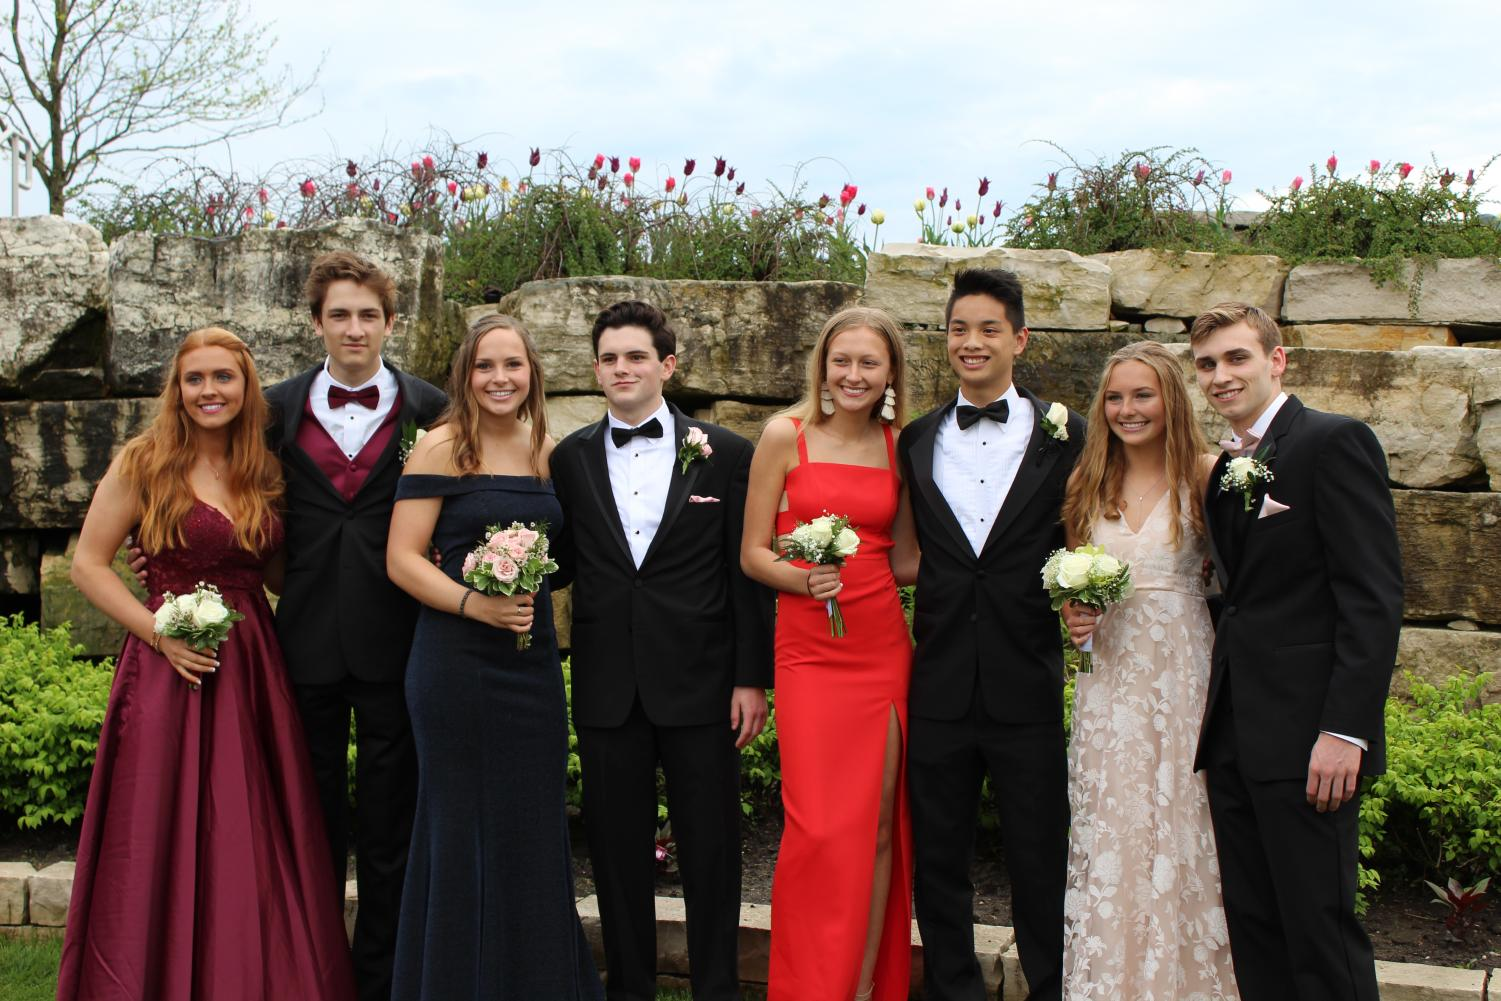 Lily Werner is shown above celebrating her Junior Prom with her buds!